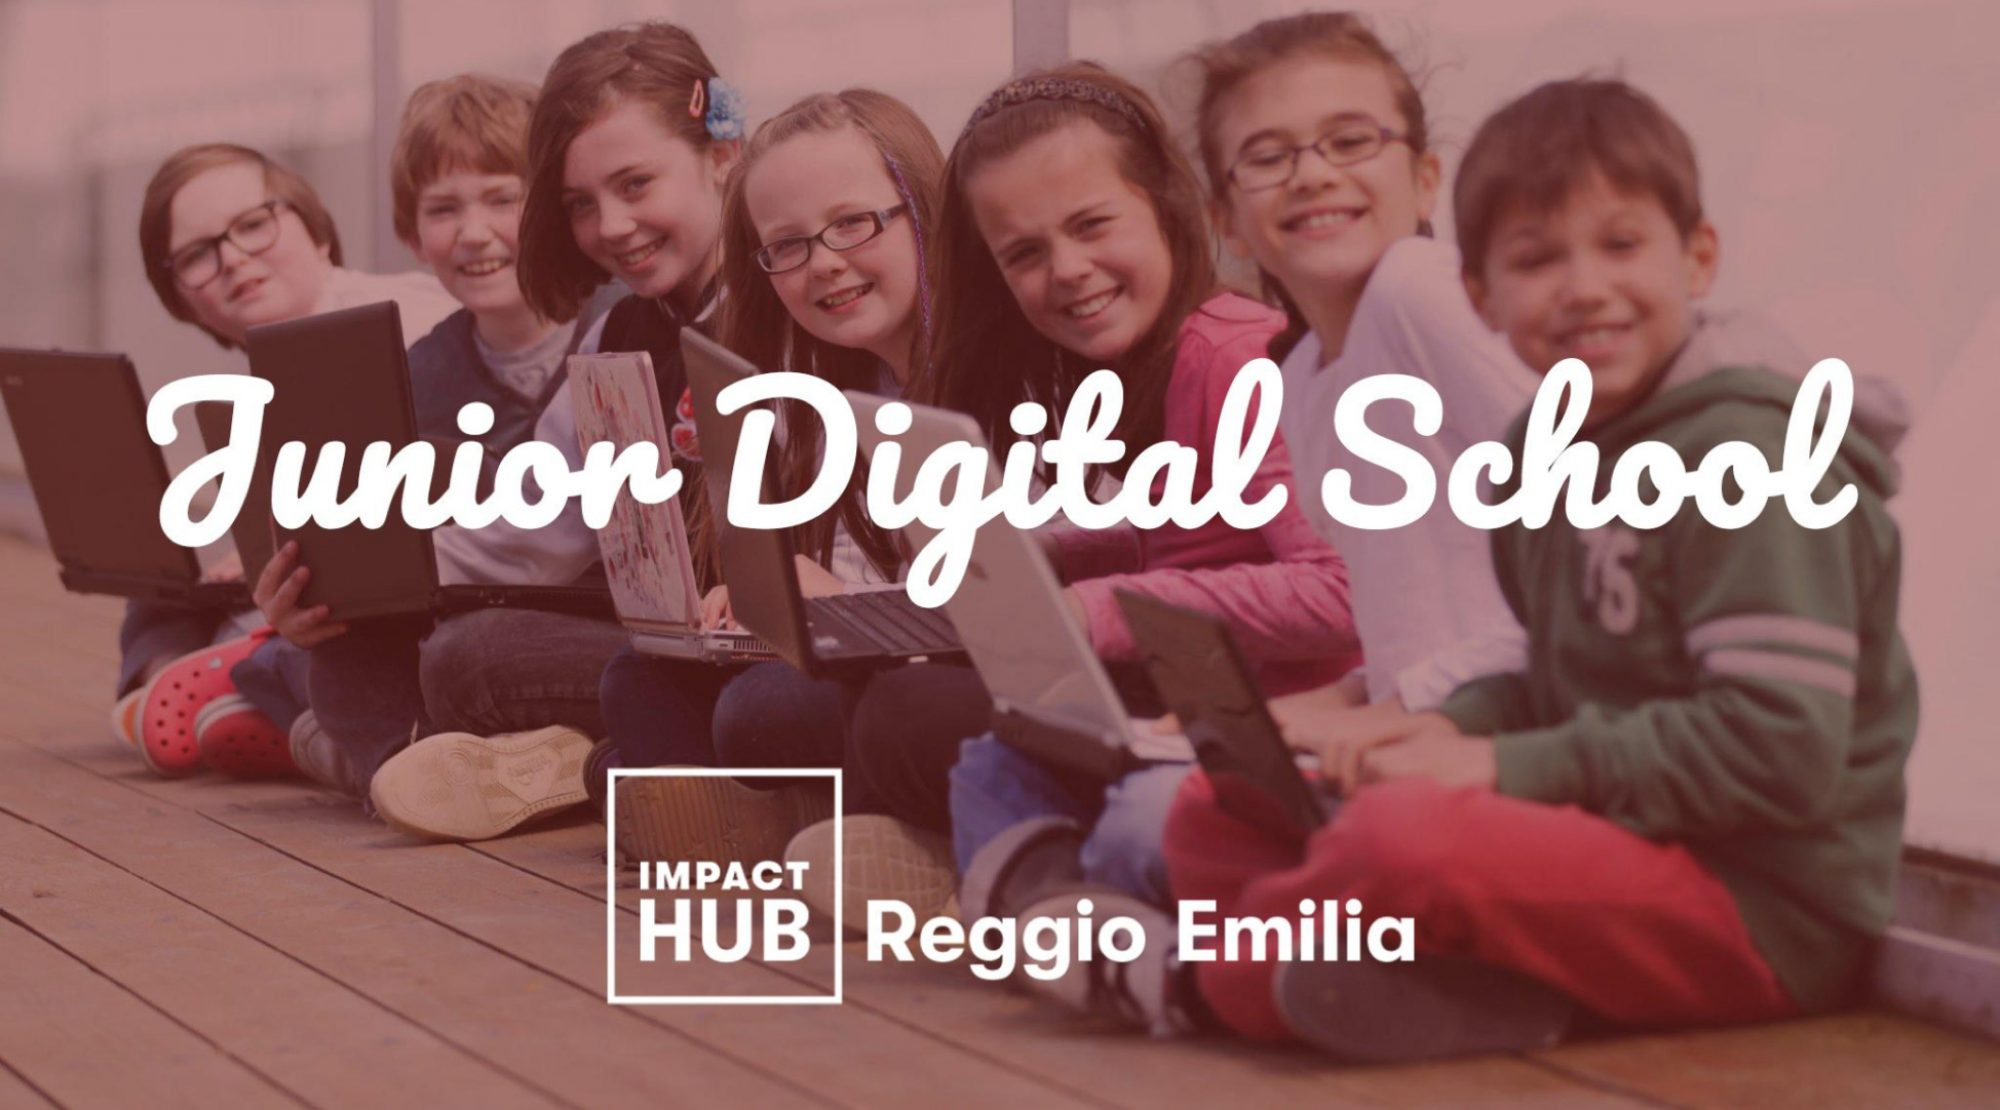 Junior Digital School